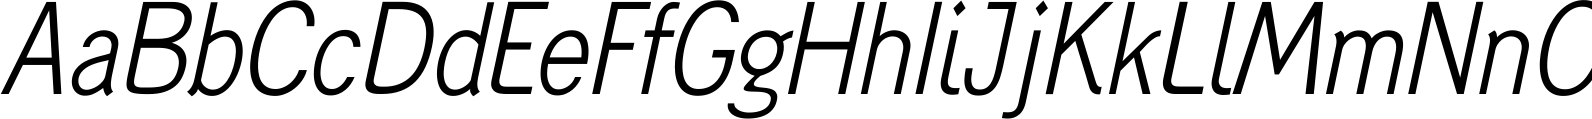 Generation Gothic Condensed Light Italic